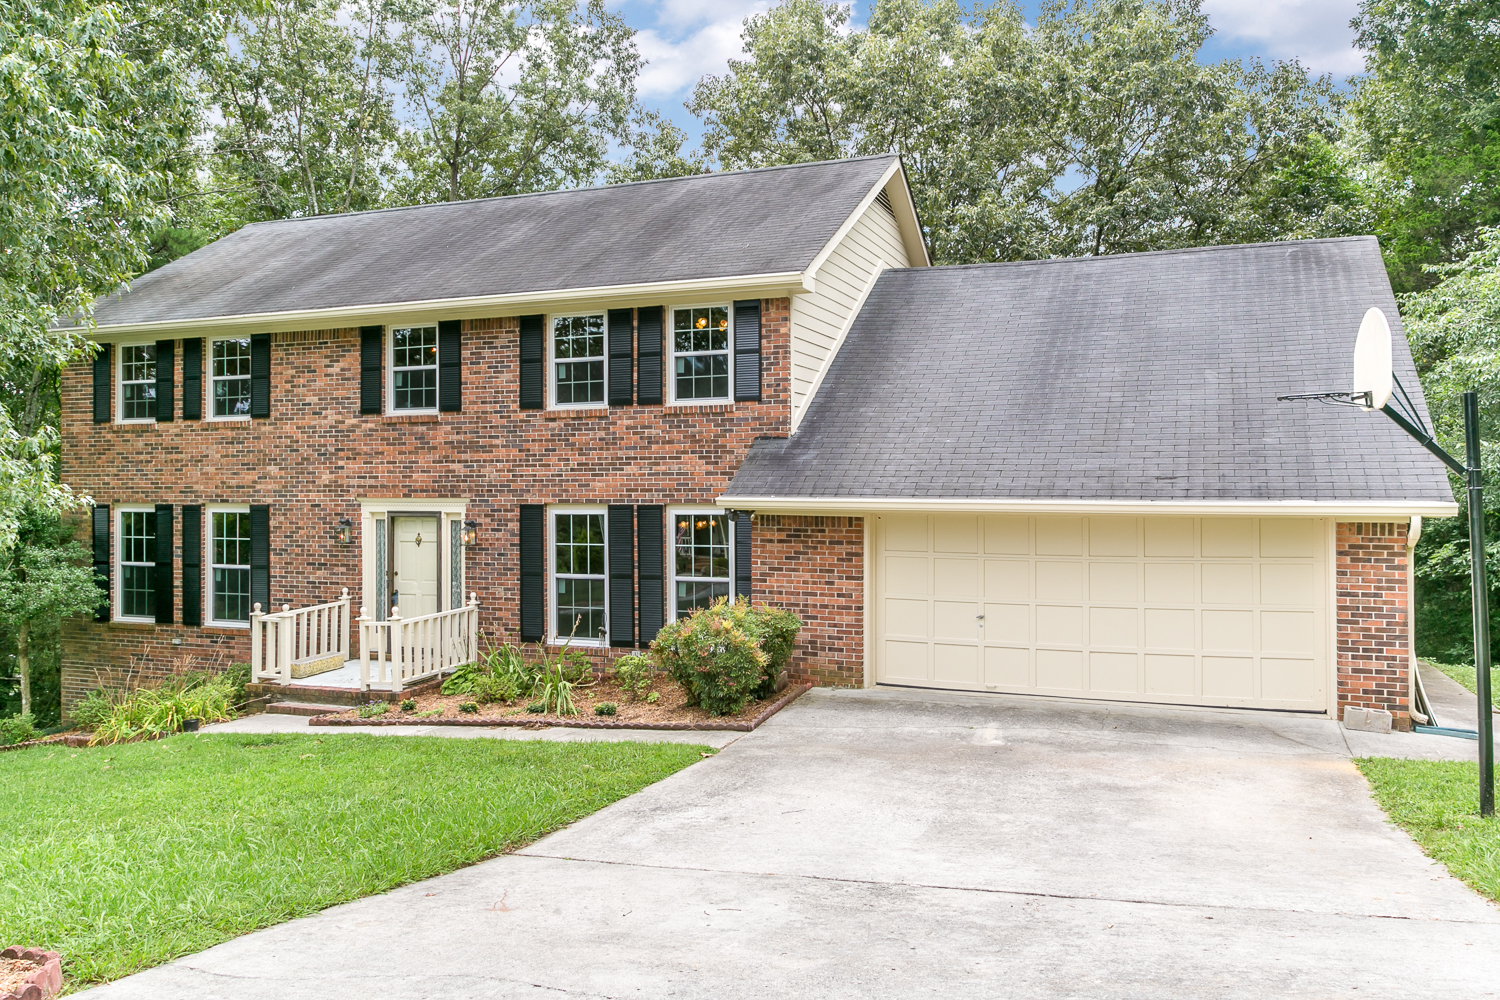 1828 River Chase Rd, Hixson, Tennessee 37343